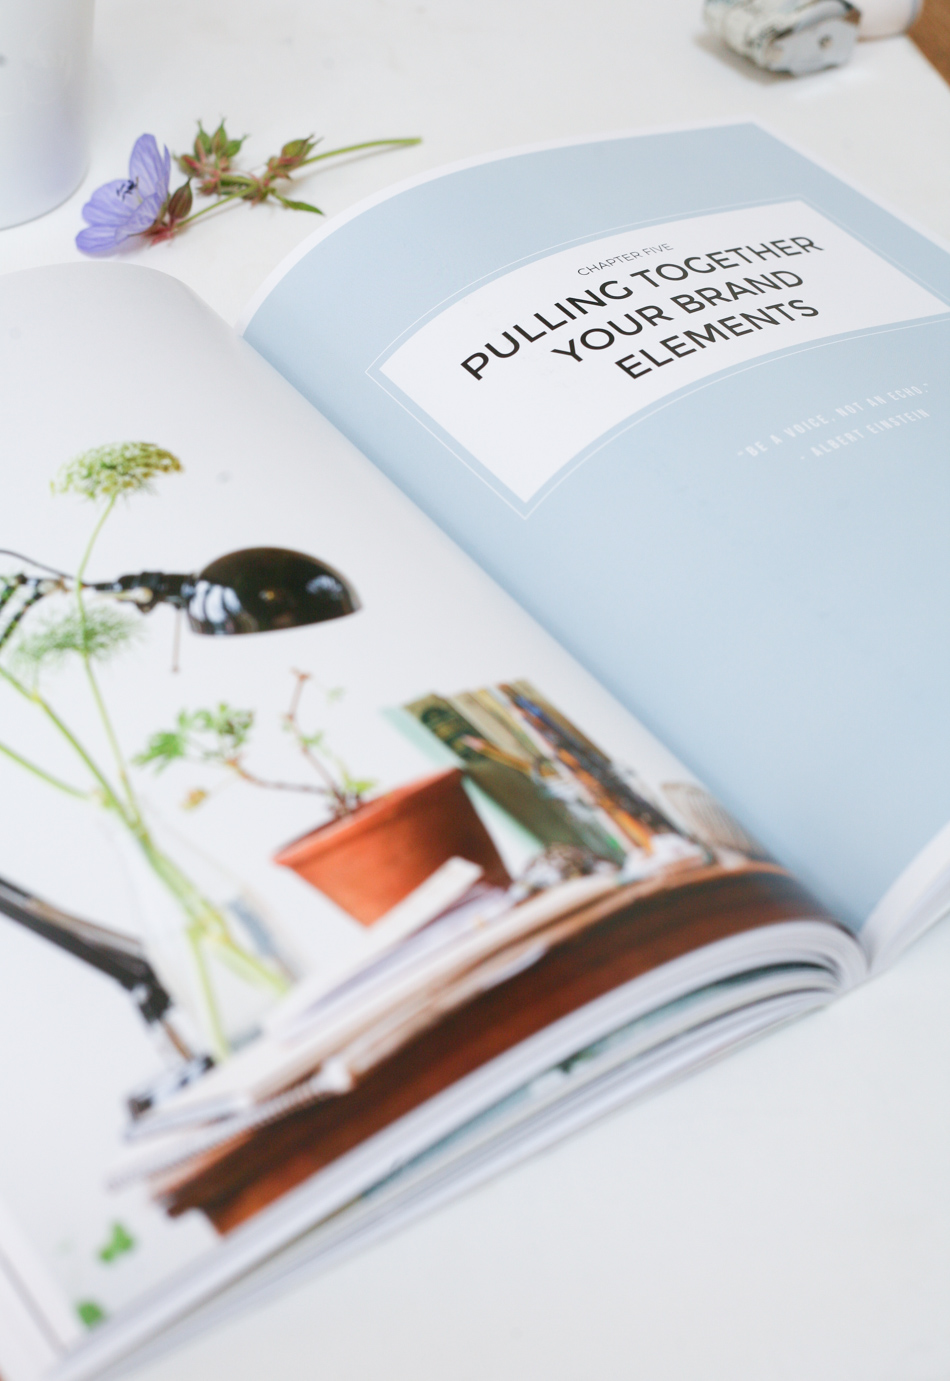 HOW TO STYLE YOUR BRAND BESTSELLING BOOK BY FIONA HUMBERSTONE-5